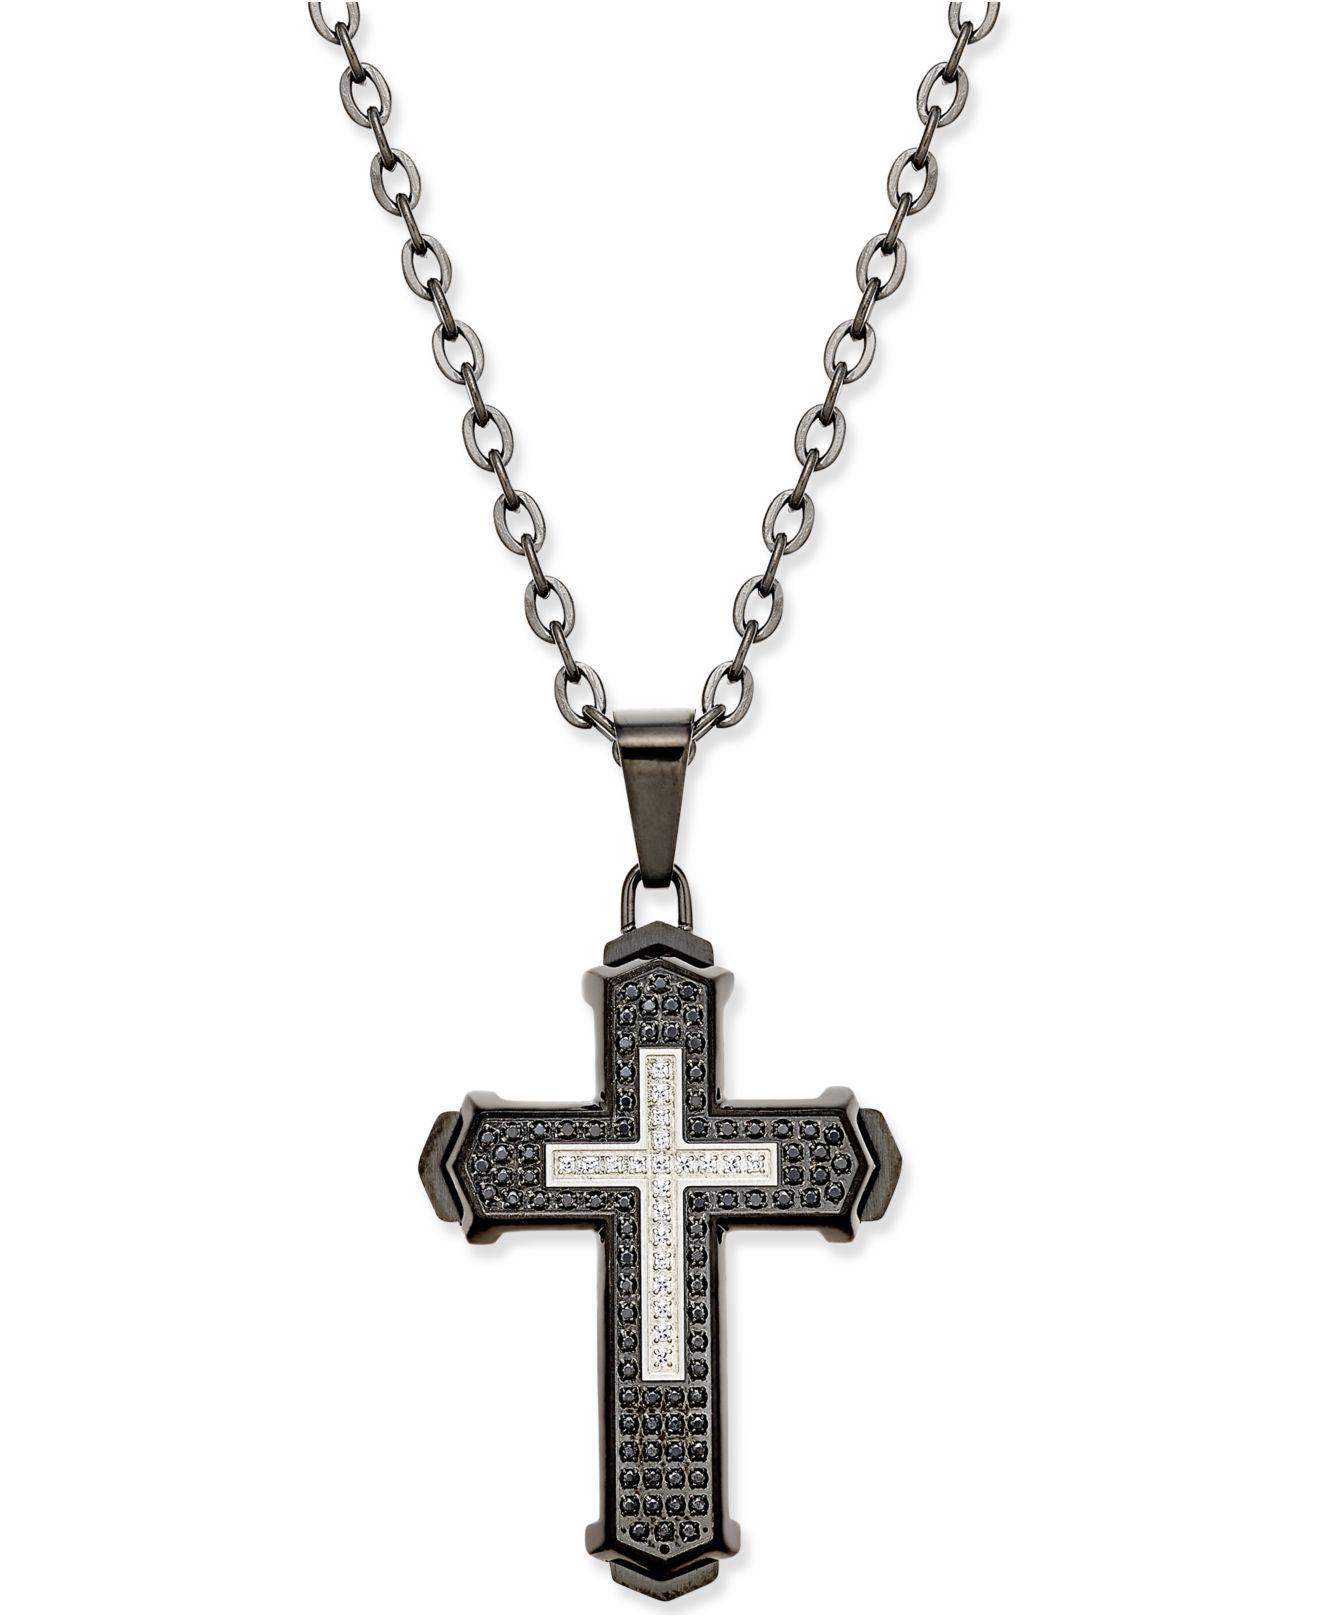 Macy S Men S Diamond Cross Pendant Necklace 1 2 Ct T W In Stainless Steel With Black Ion Plating In Silver Metallic For Men Lyst